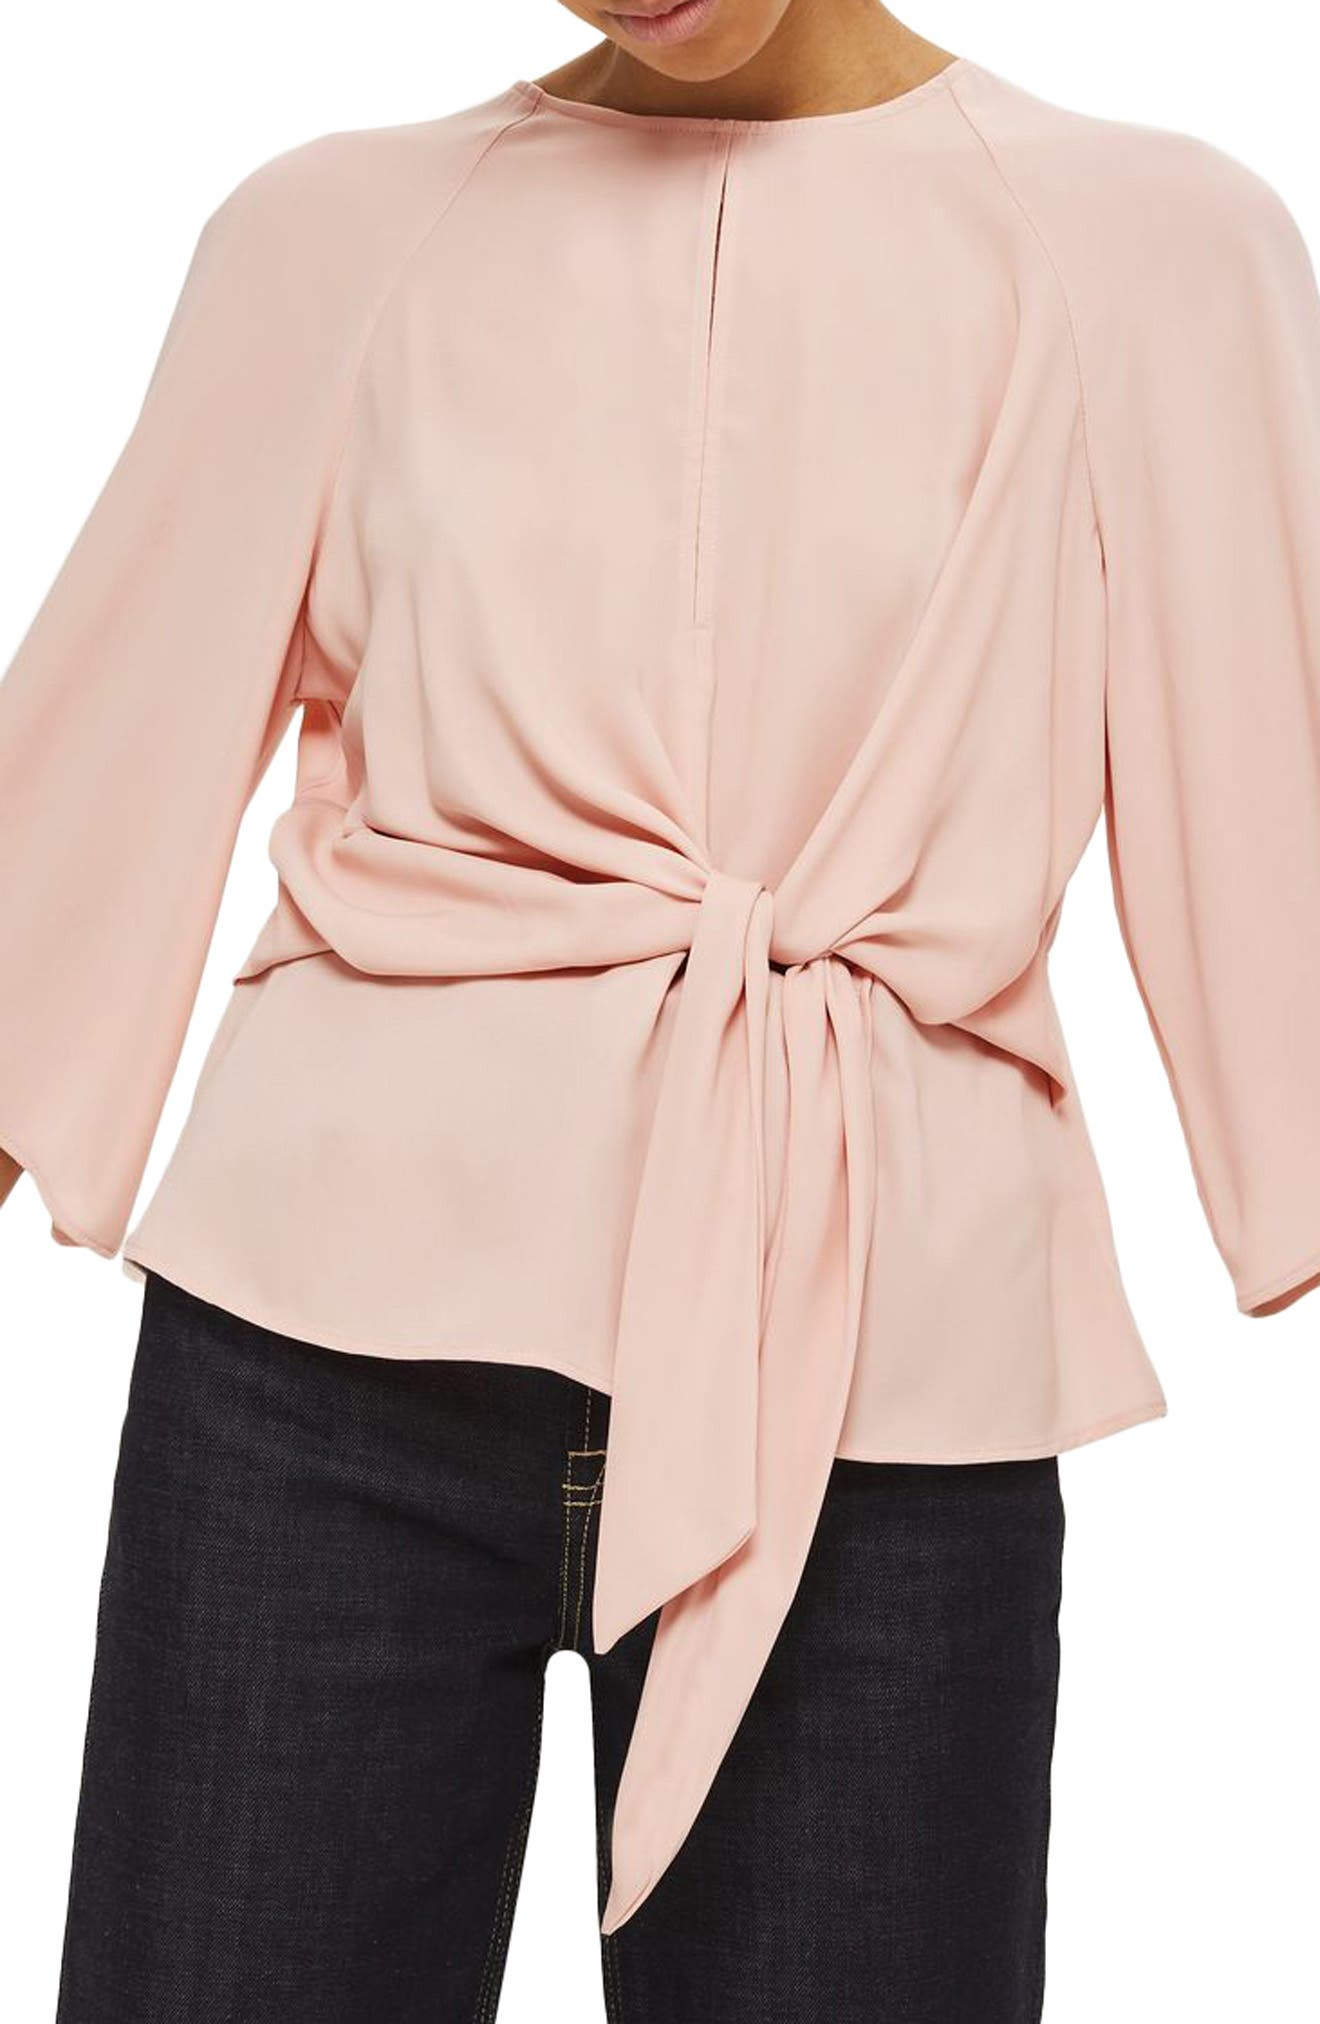 Alternate Image 1 Selected - Topshop Slouchy Knot Front Blouse